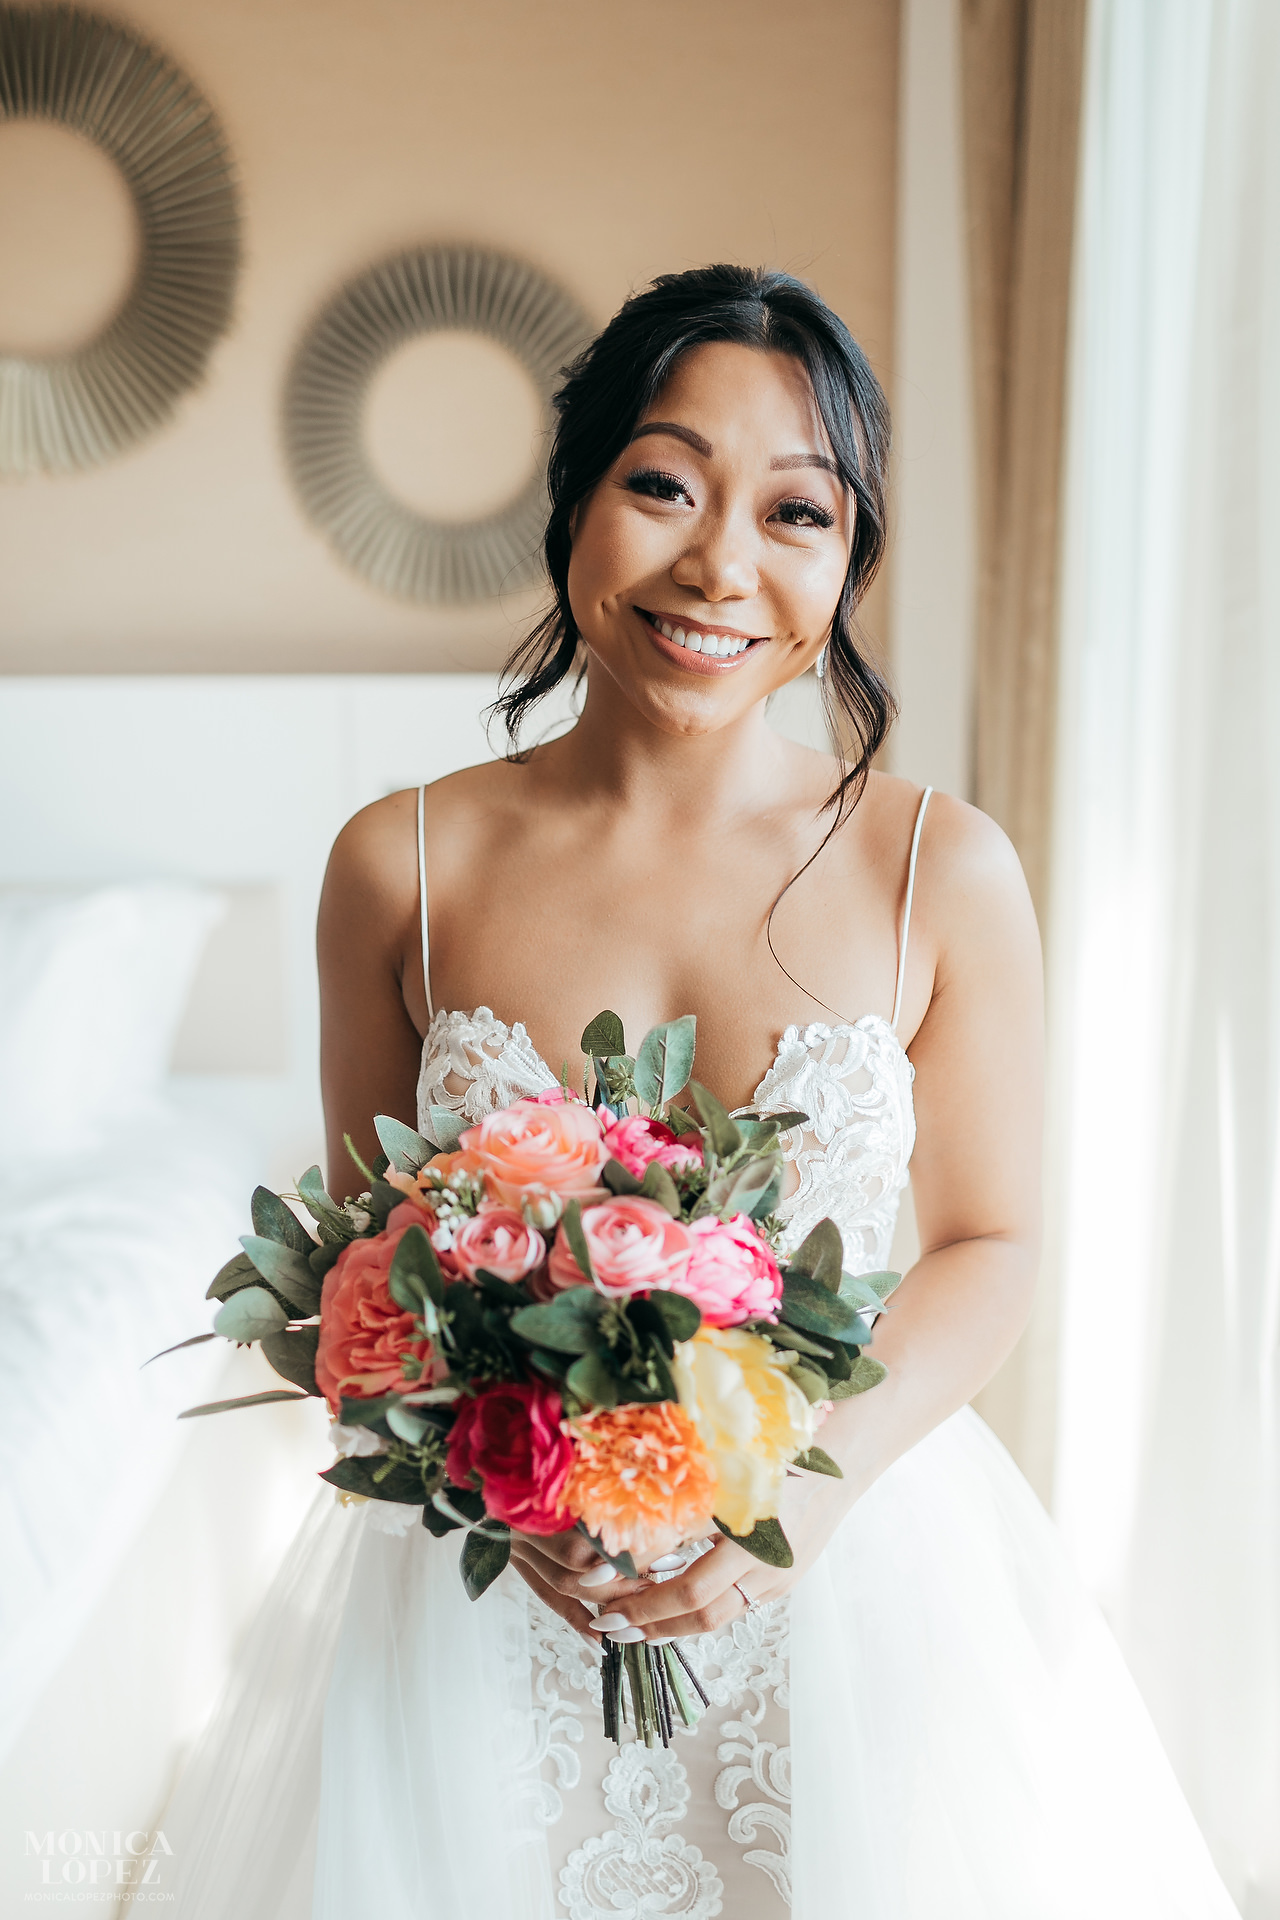 Royalton Riviera Cancun Hideaway Sky Terrace Wedding - Bride Bouquet